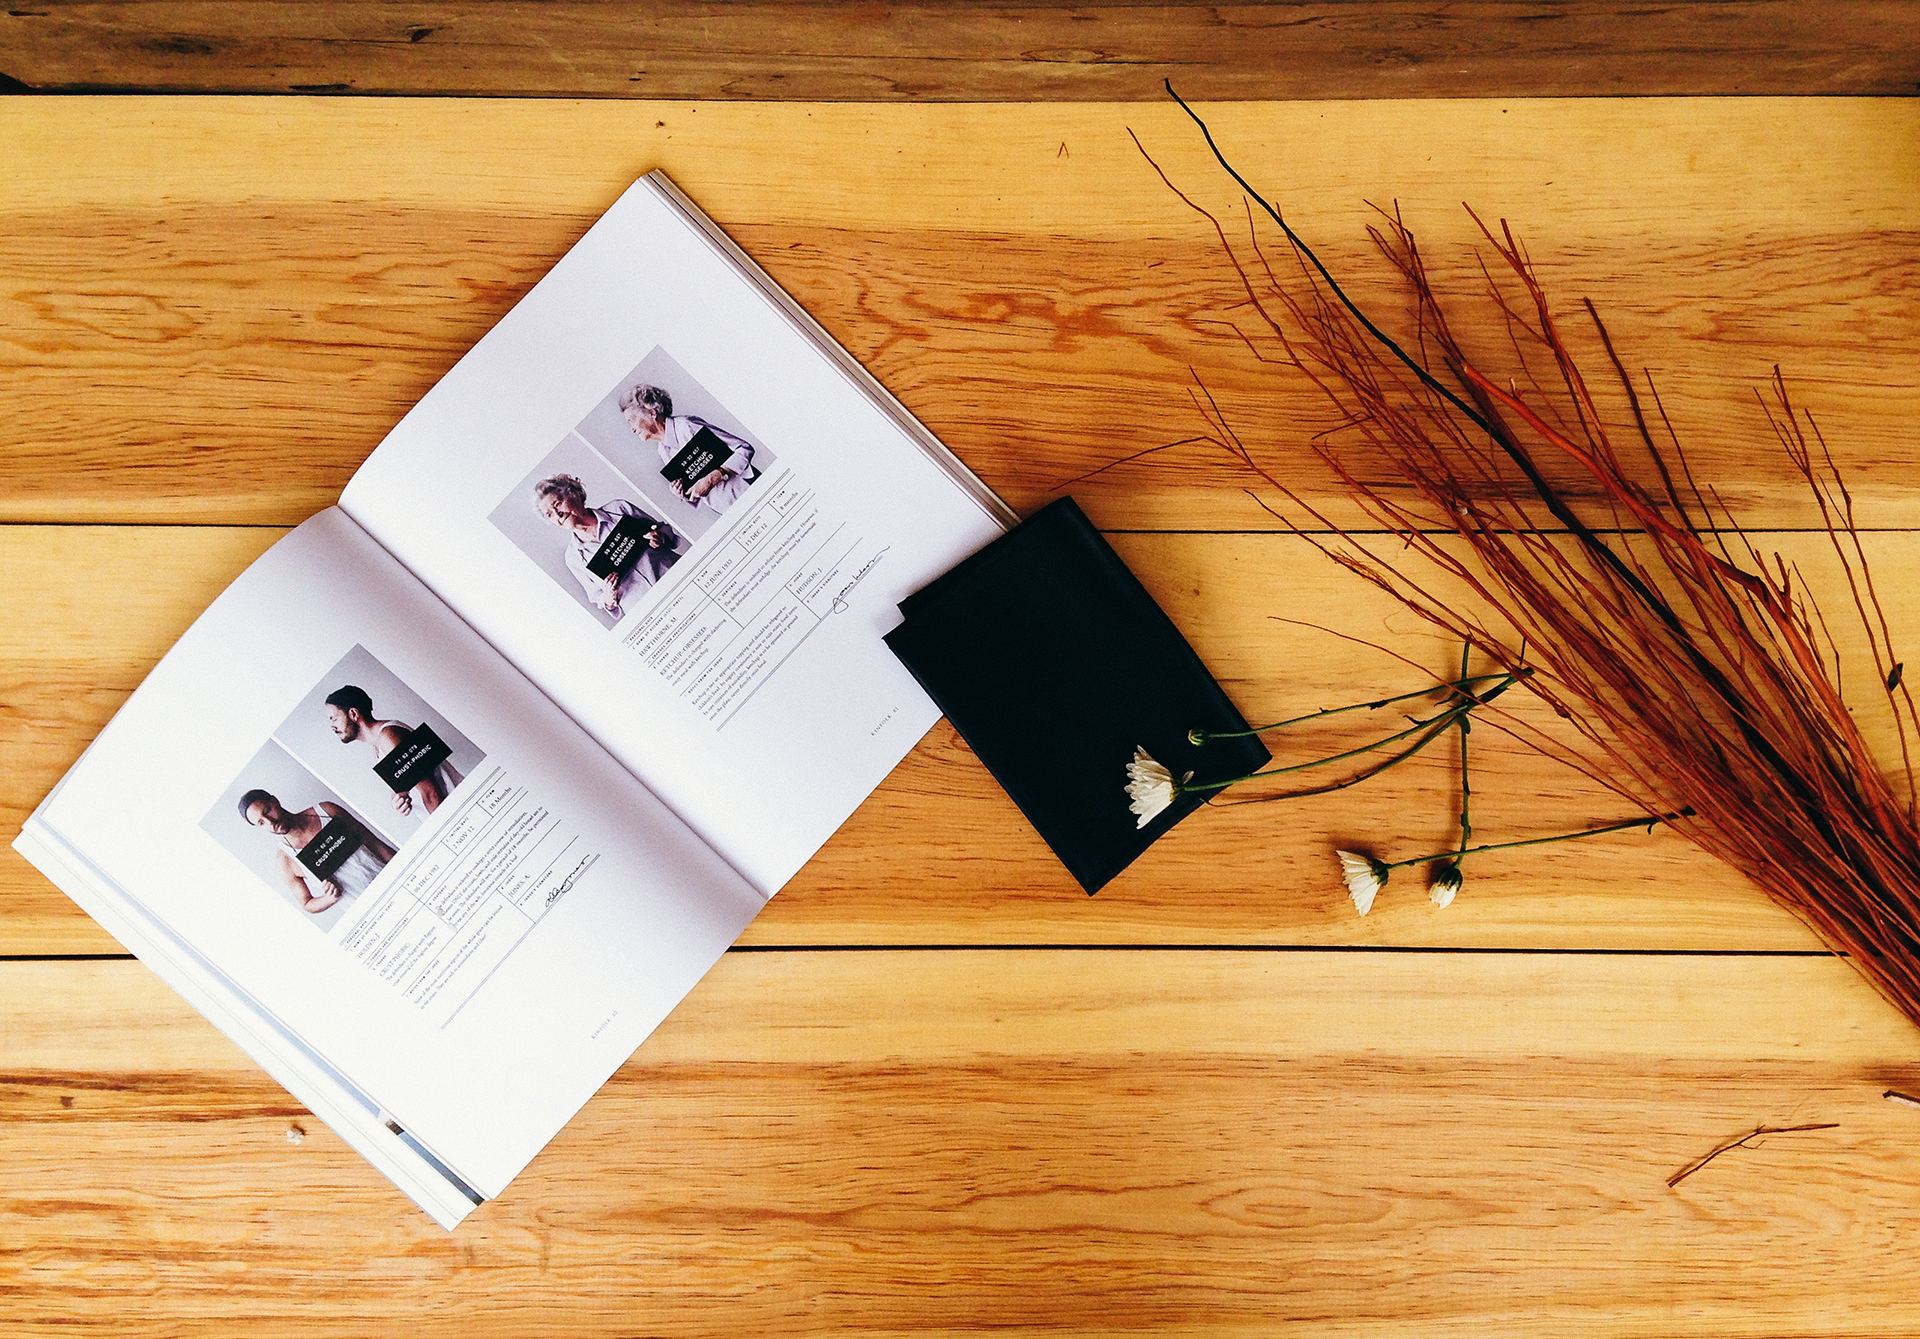 Creative photo book ideas